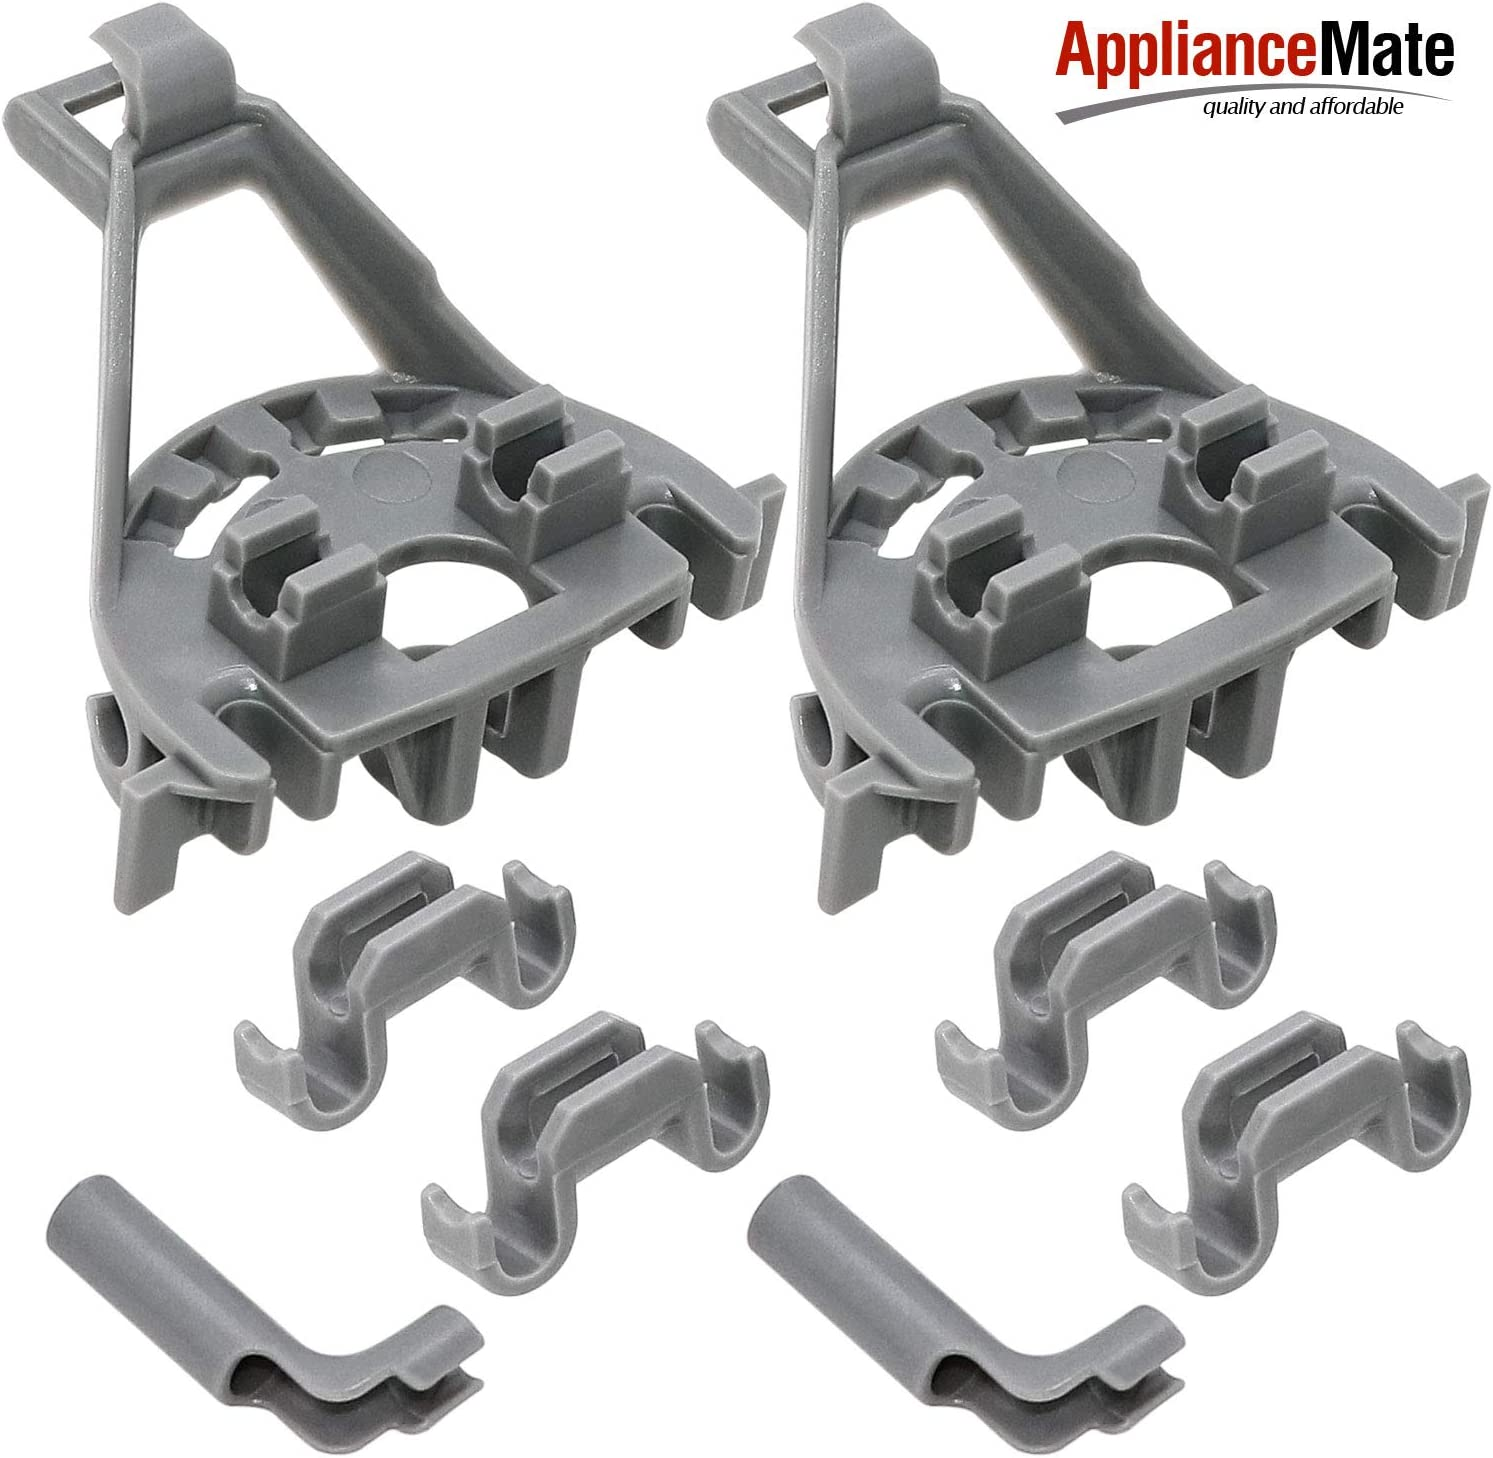 Appliancemate 428344 Dishwasher Bearing 00428344 Lower Tine Clip Kit For Bosch Thermador Kenmore Dishwashers 2 - Pack